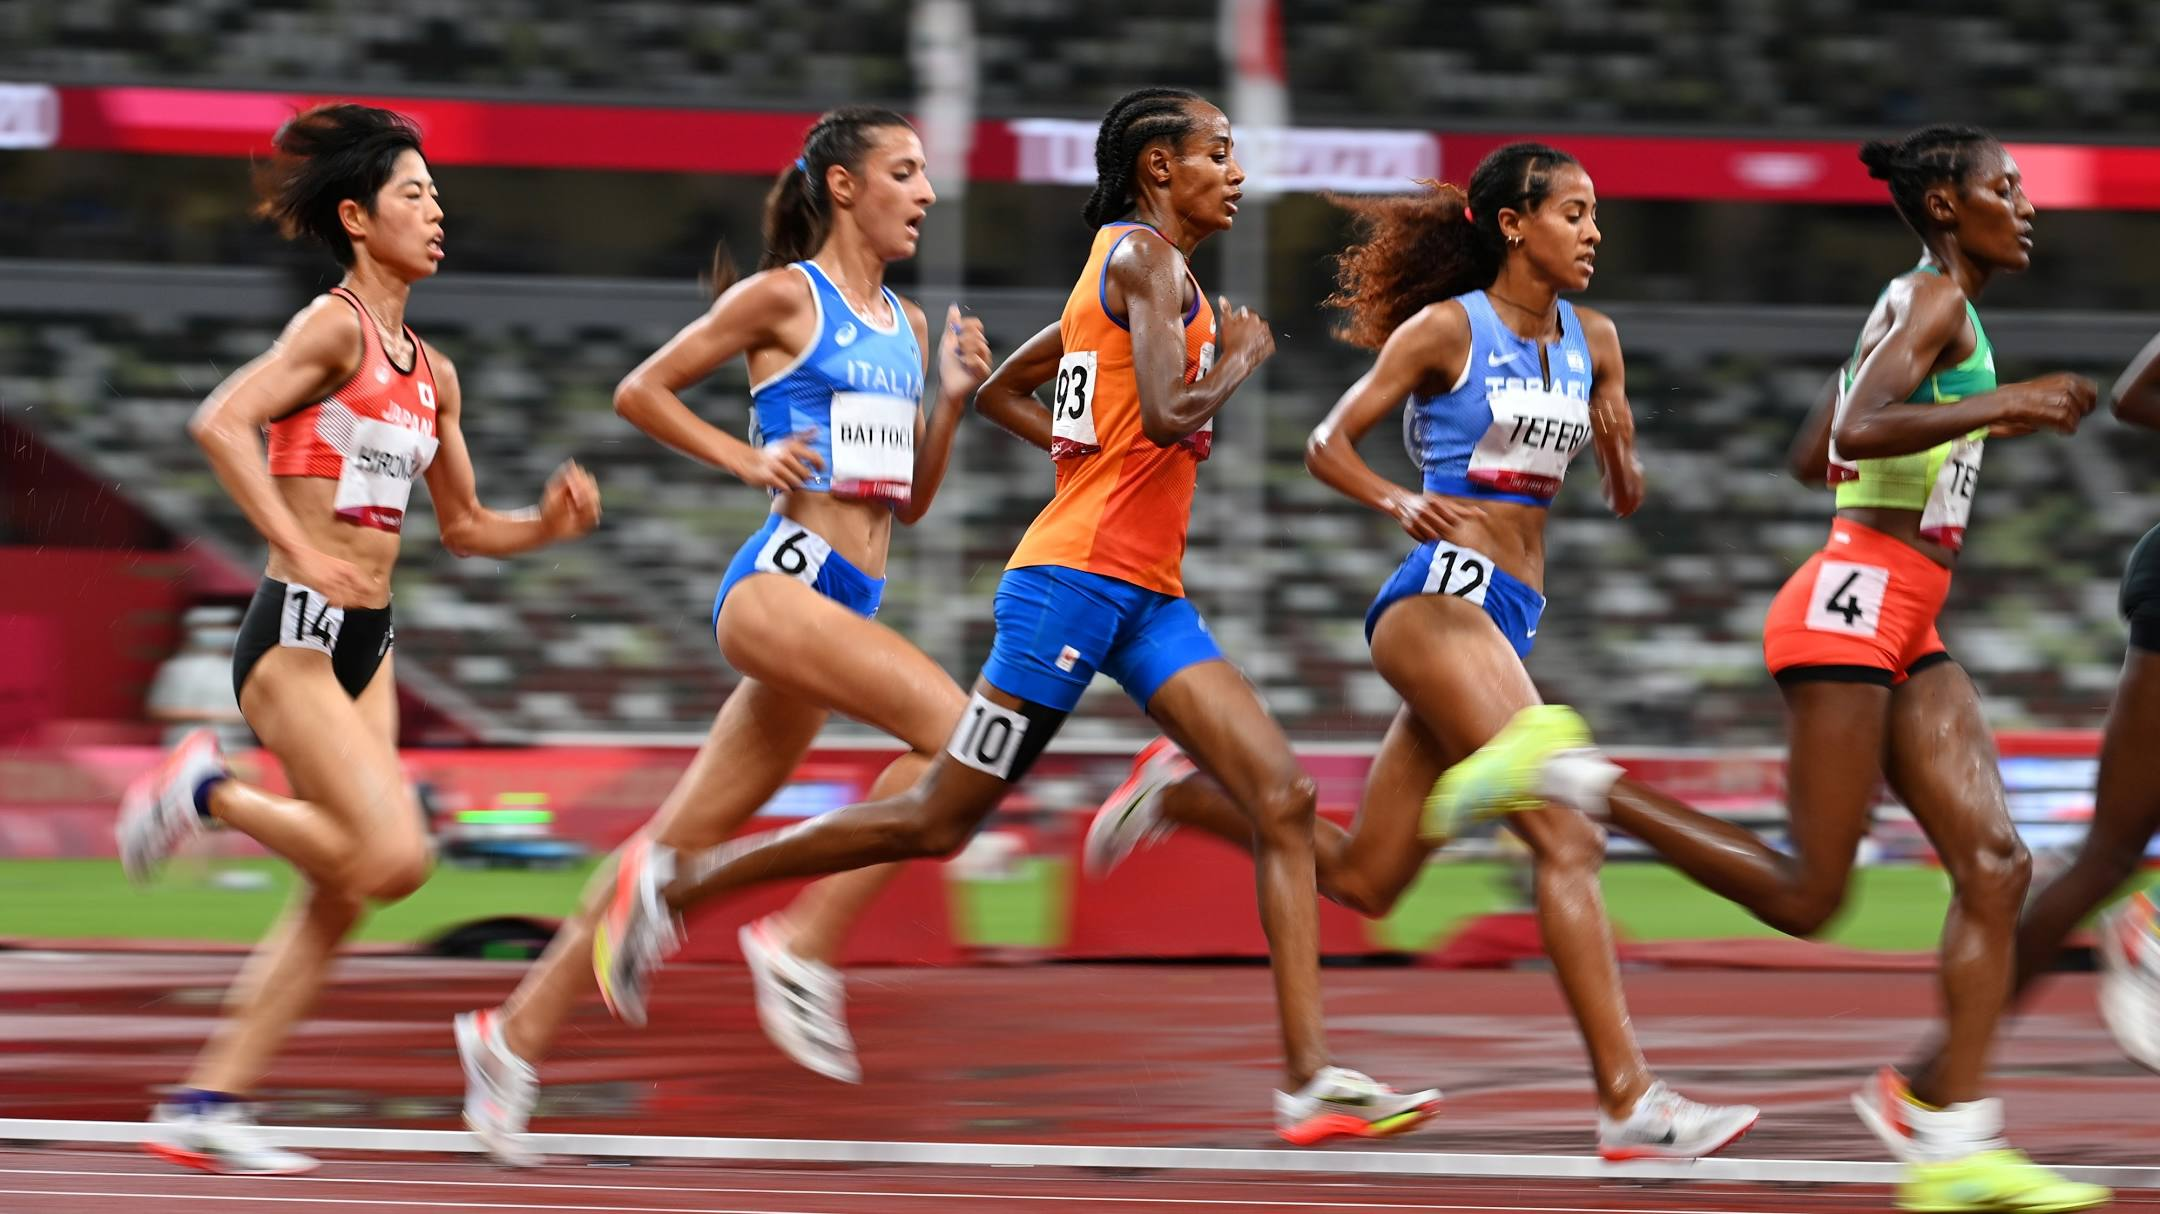 Hassan (No. 10) started to accelerate to join the leading group when he passed the 3,700 meter mark.  Photo: Reuters